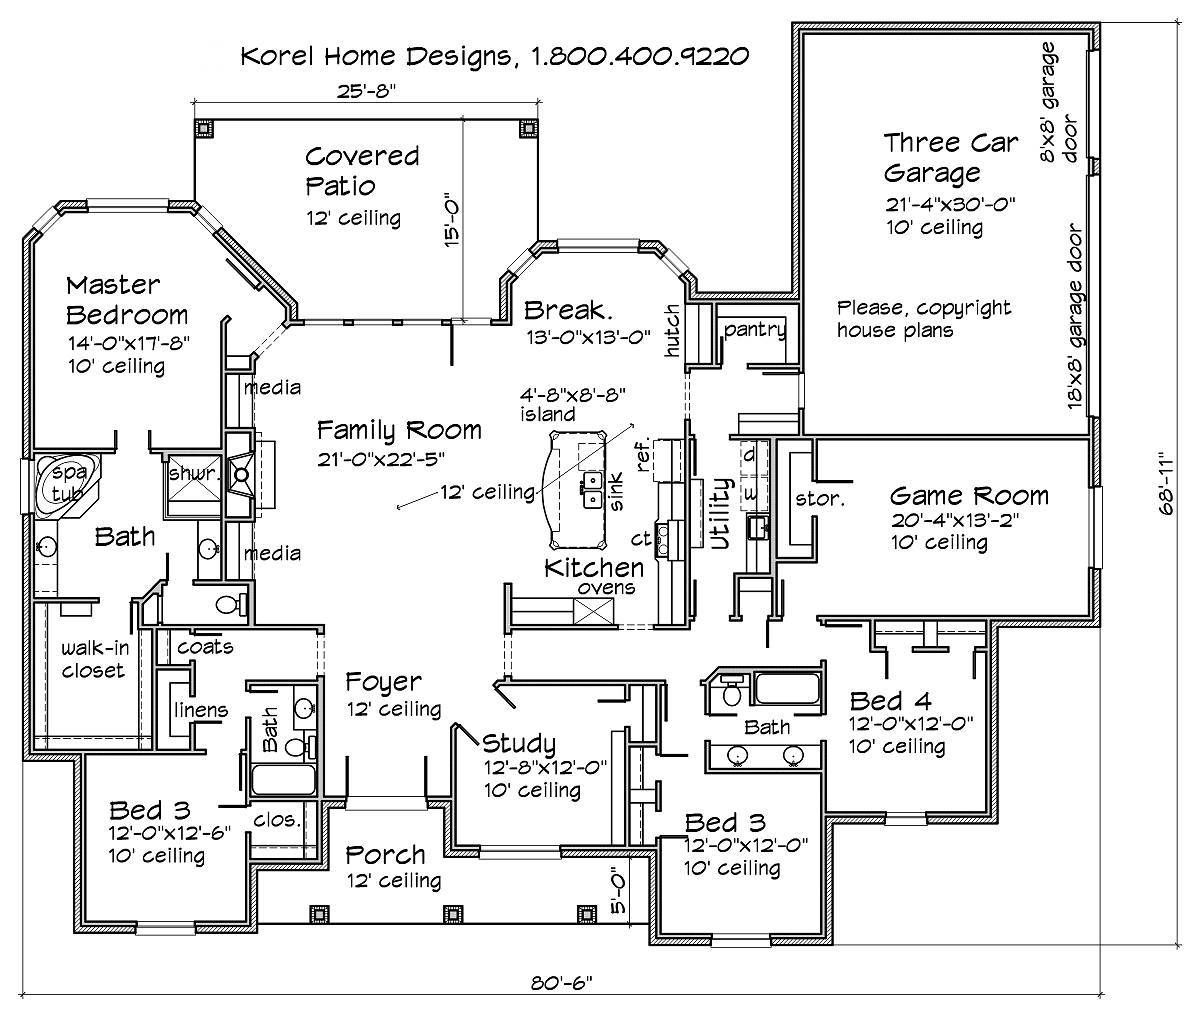 House Plans By Korel Home Designs House Plans How To Plan House Design